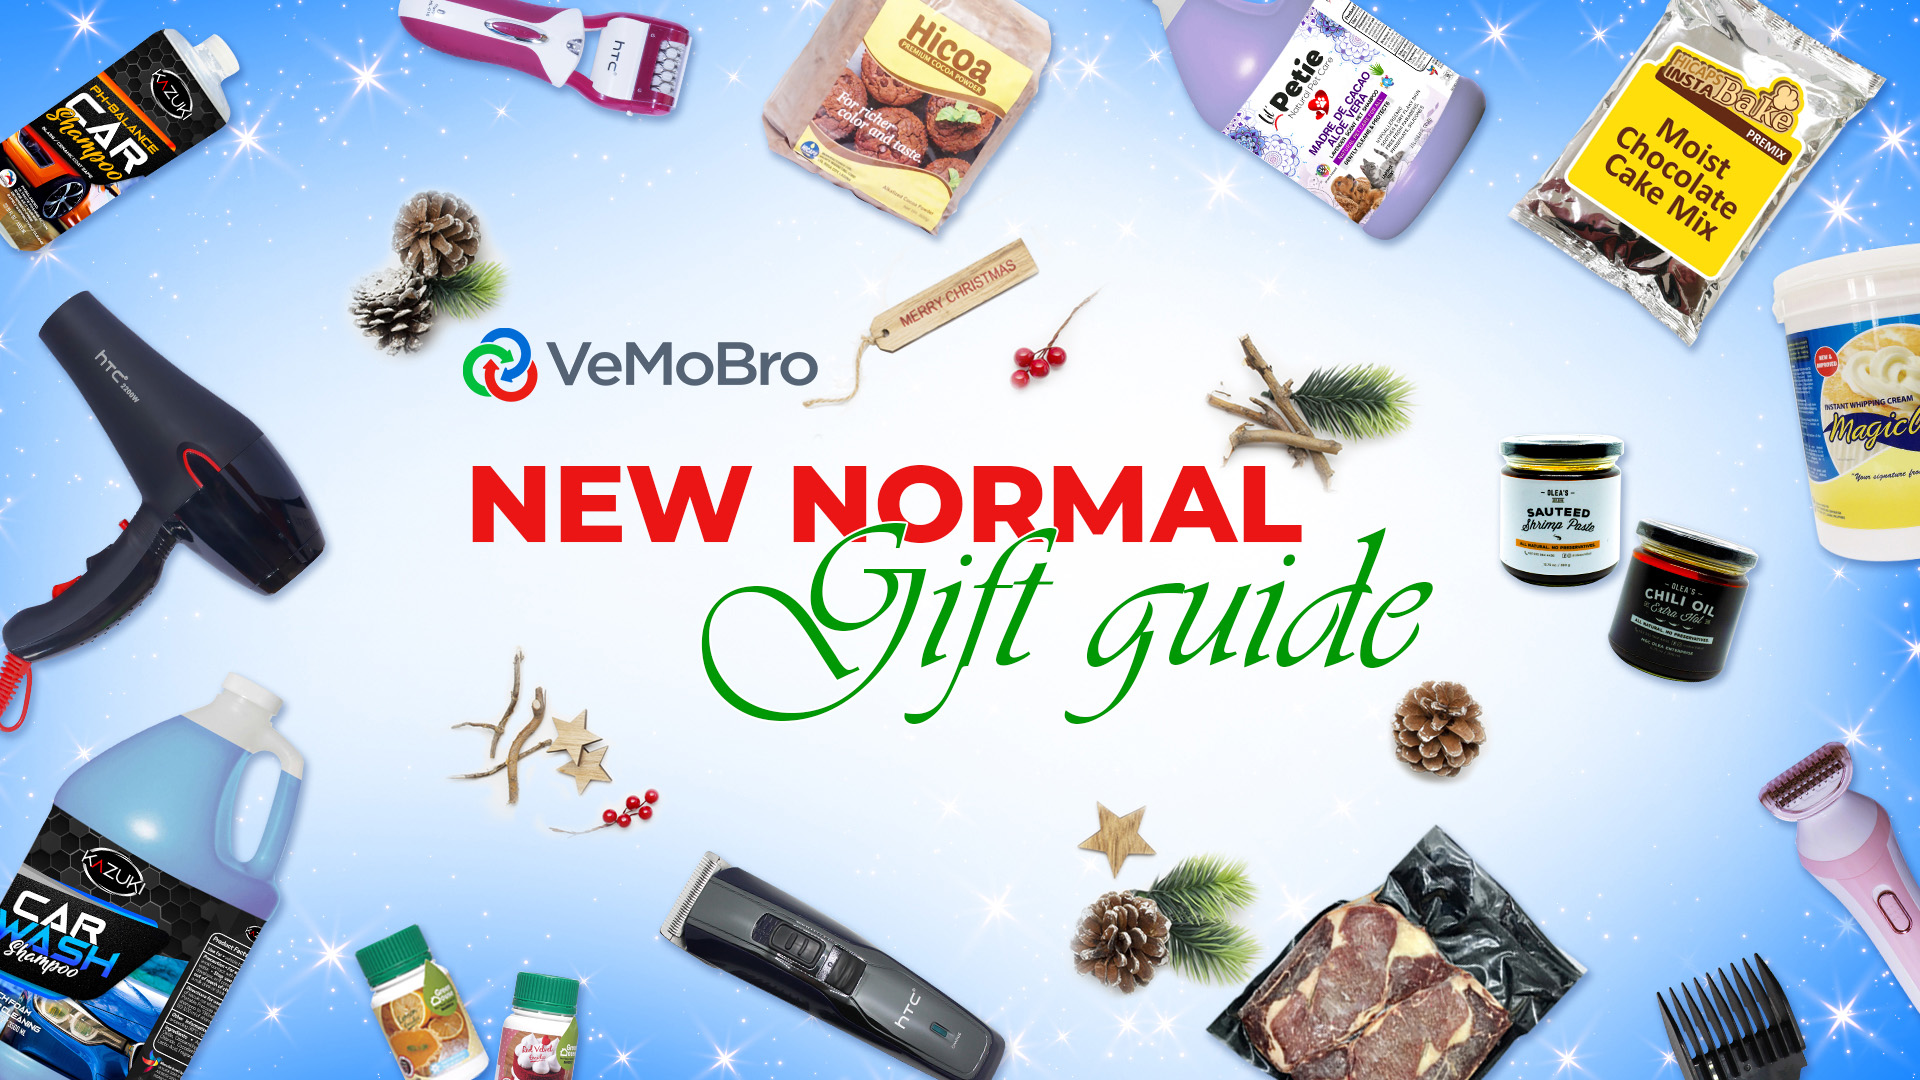 Gift Giving this Christmas is a Go: Here's a Gift Guide for the New Normal